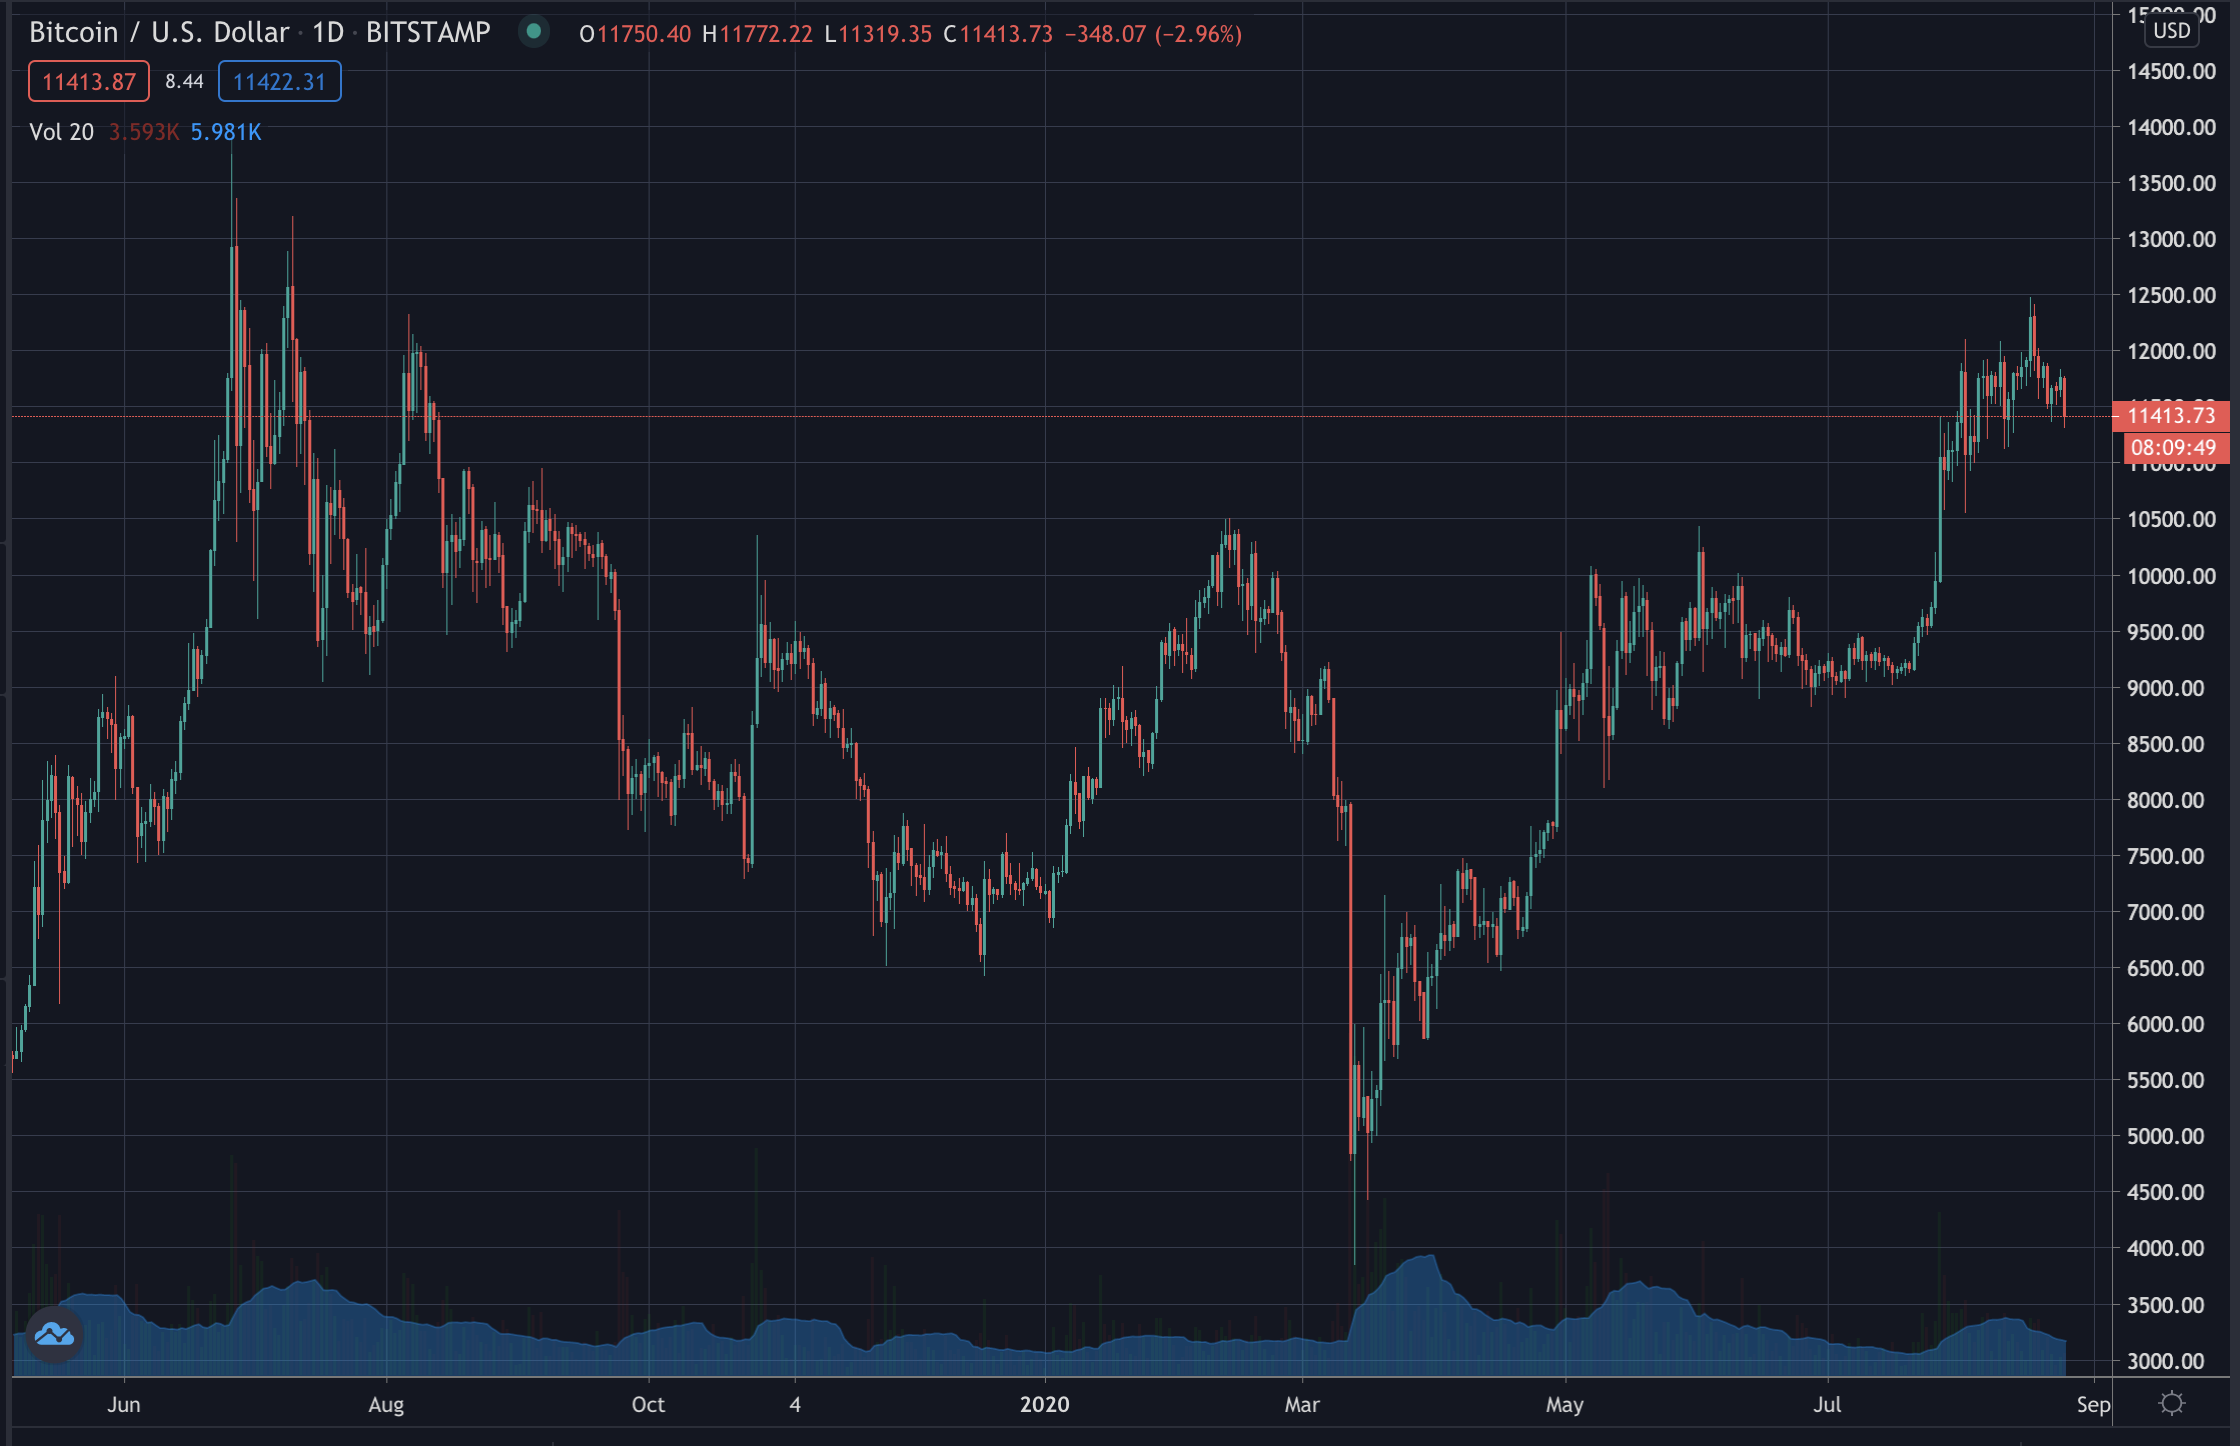 Bitcoin's price on daily candles, August 2020